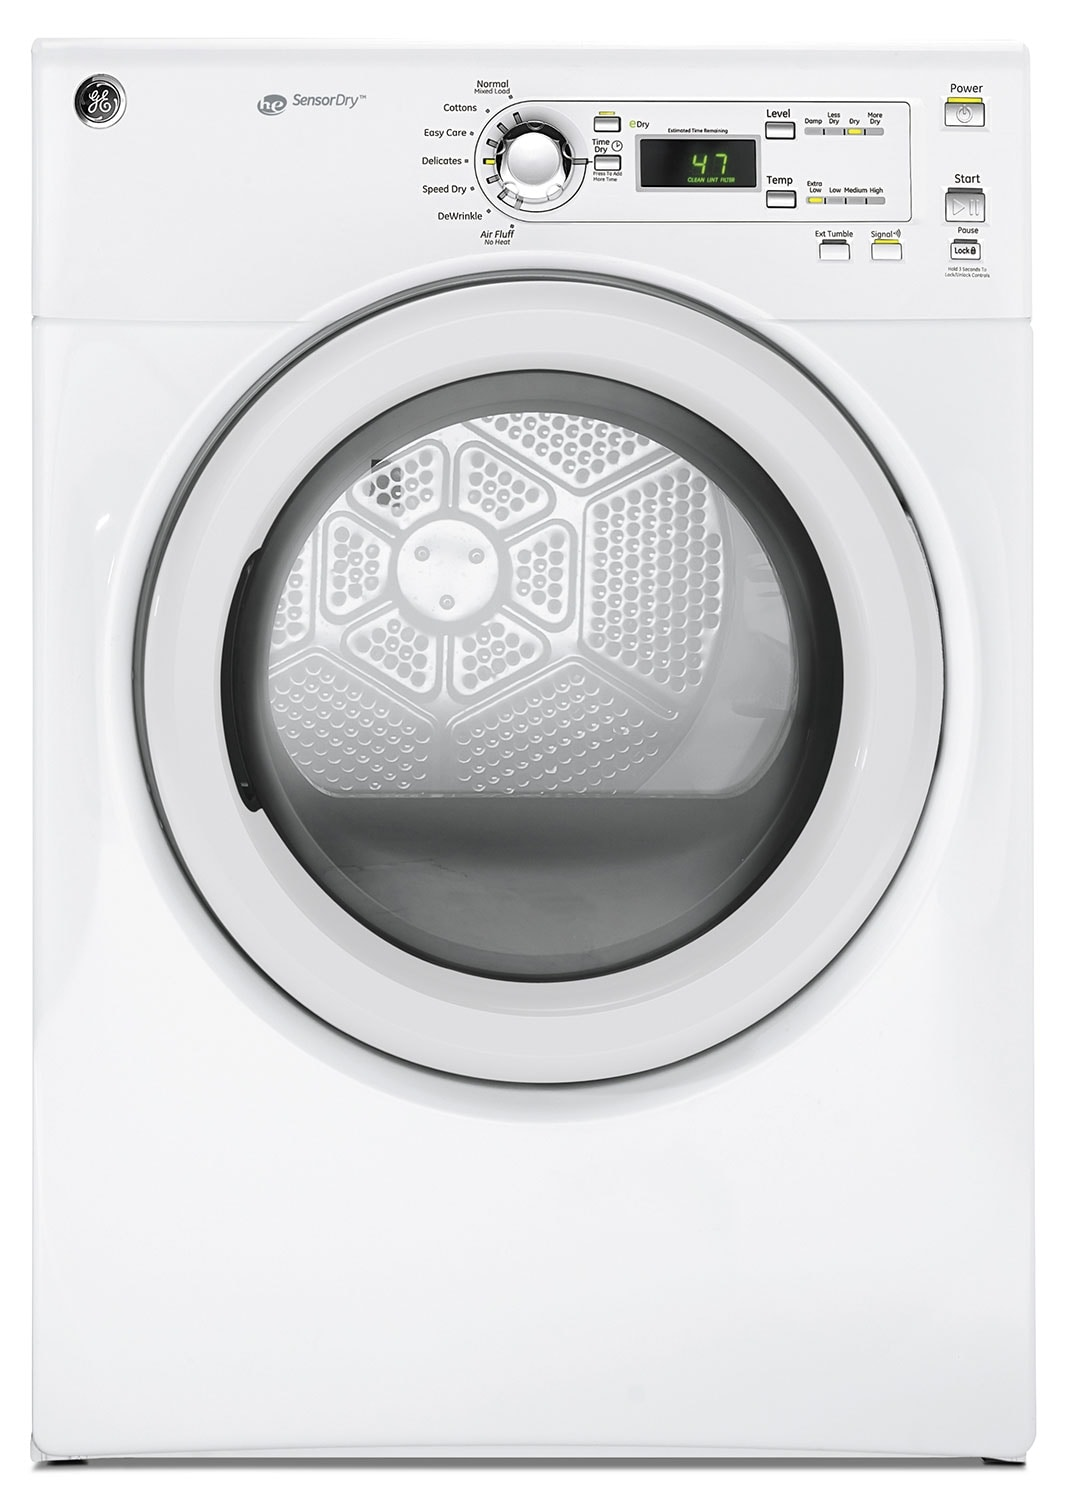 Washers and Dryers - GE White Electric Dryer (7.0 Cu. Ft.) - GFMN110EDWW